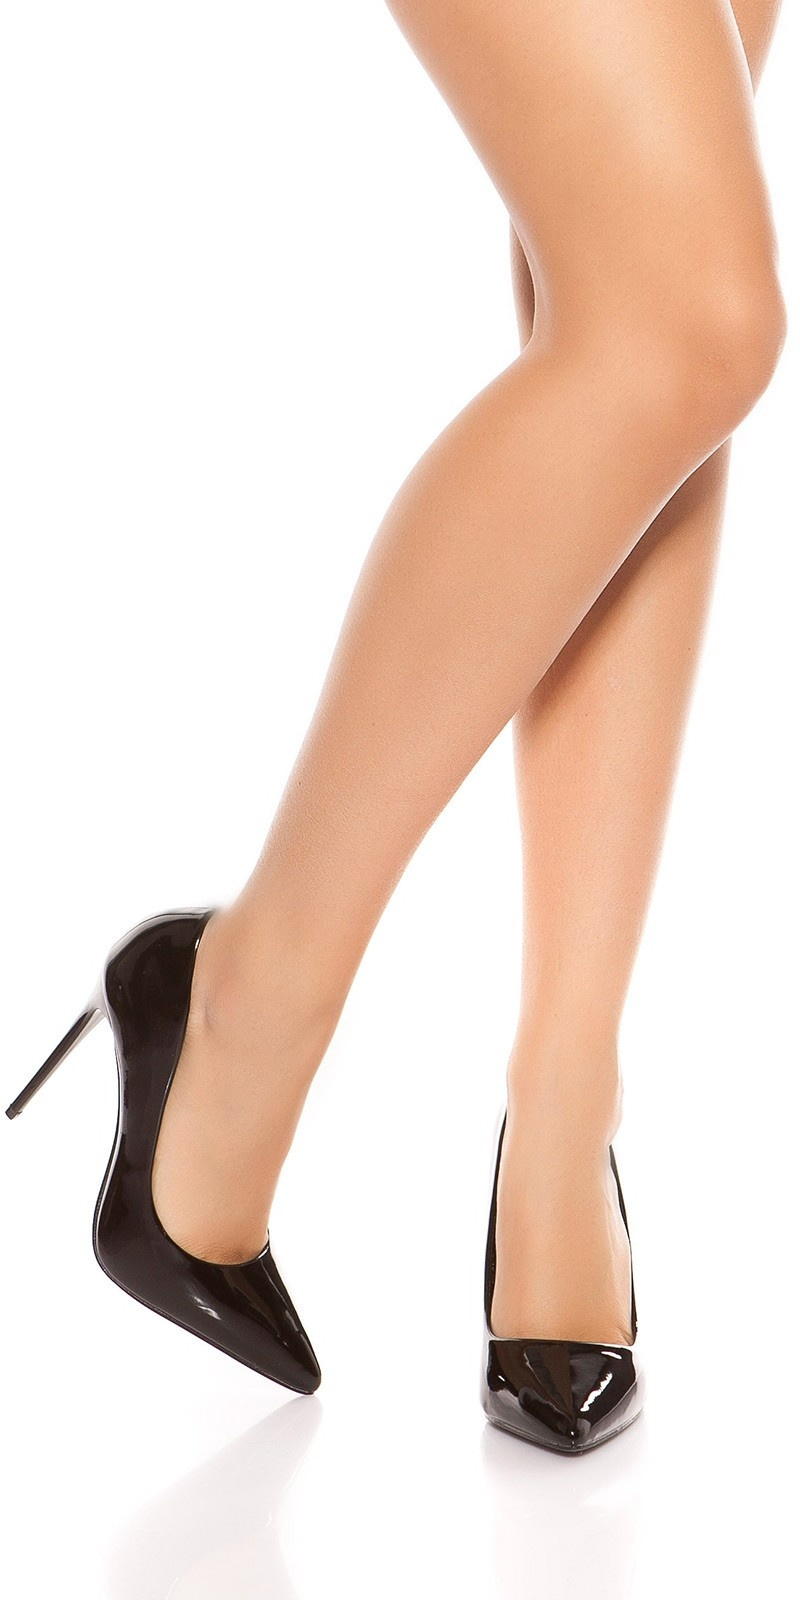 Sexy high heels in a lacquer look Black